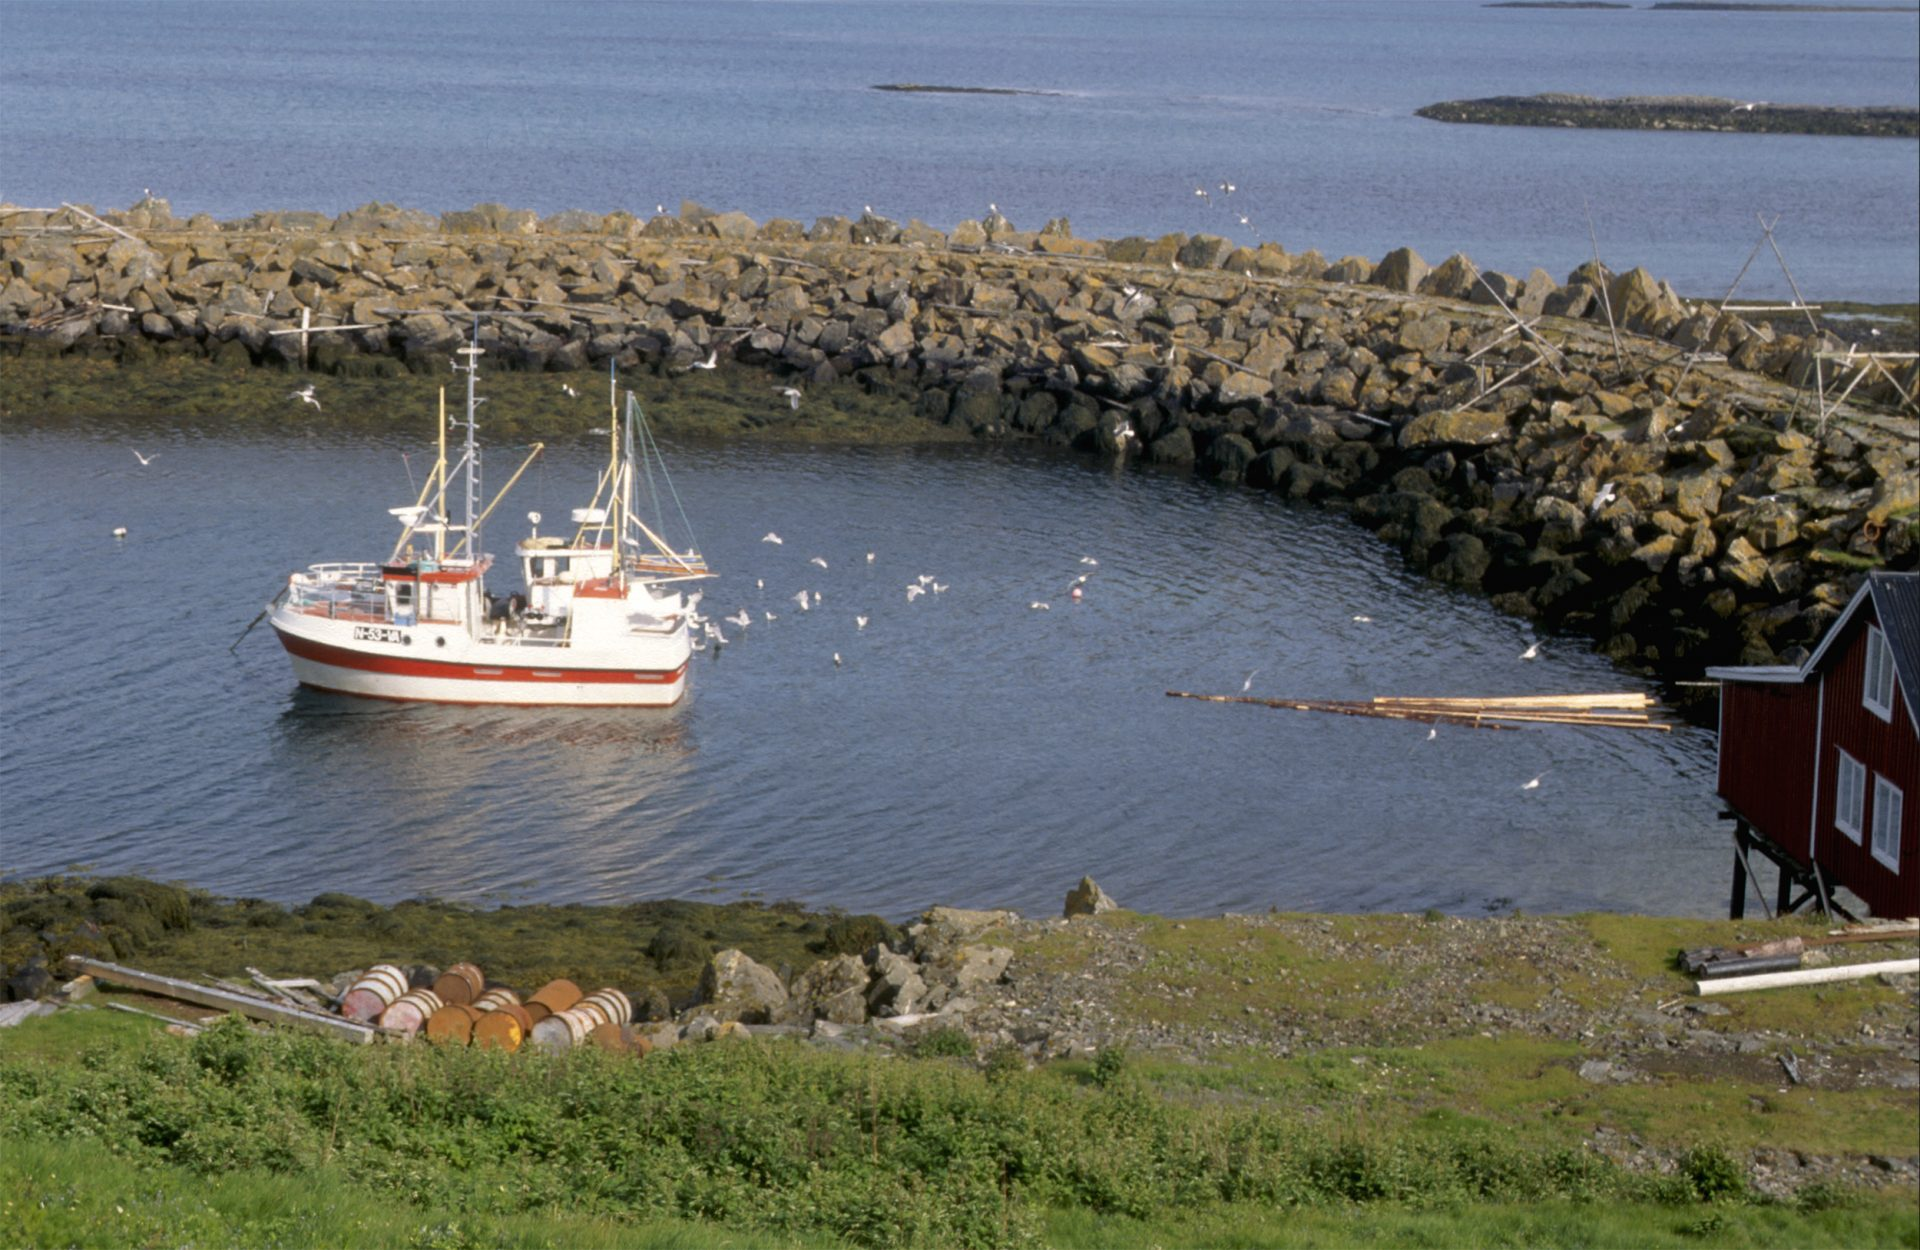 The harbour in Skjærvær. Skjærvær fishing harbour on Vega in Nordland. The breakwaters were built to provide safe harbour for the motorised smacks. Photo from the archives of The Directorate for Cultural Heritage